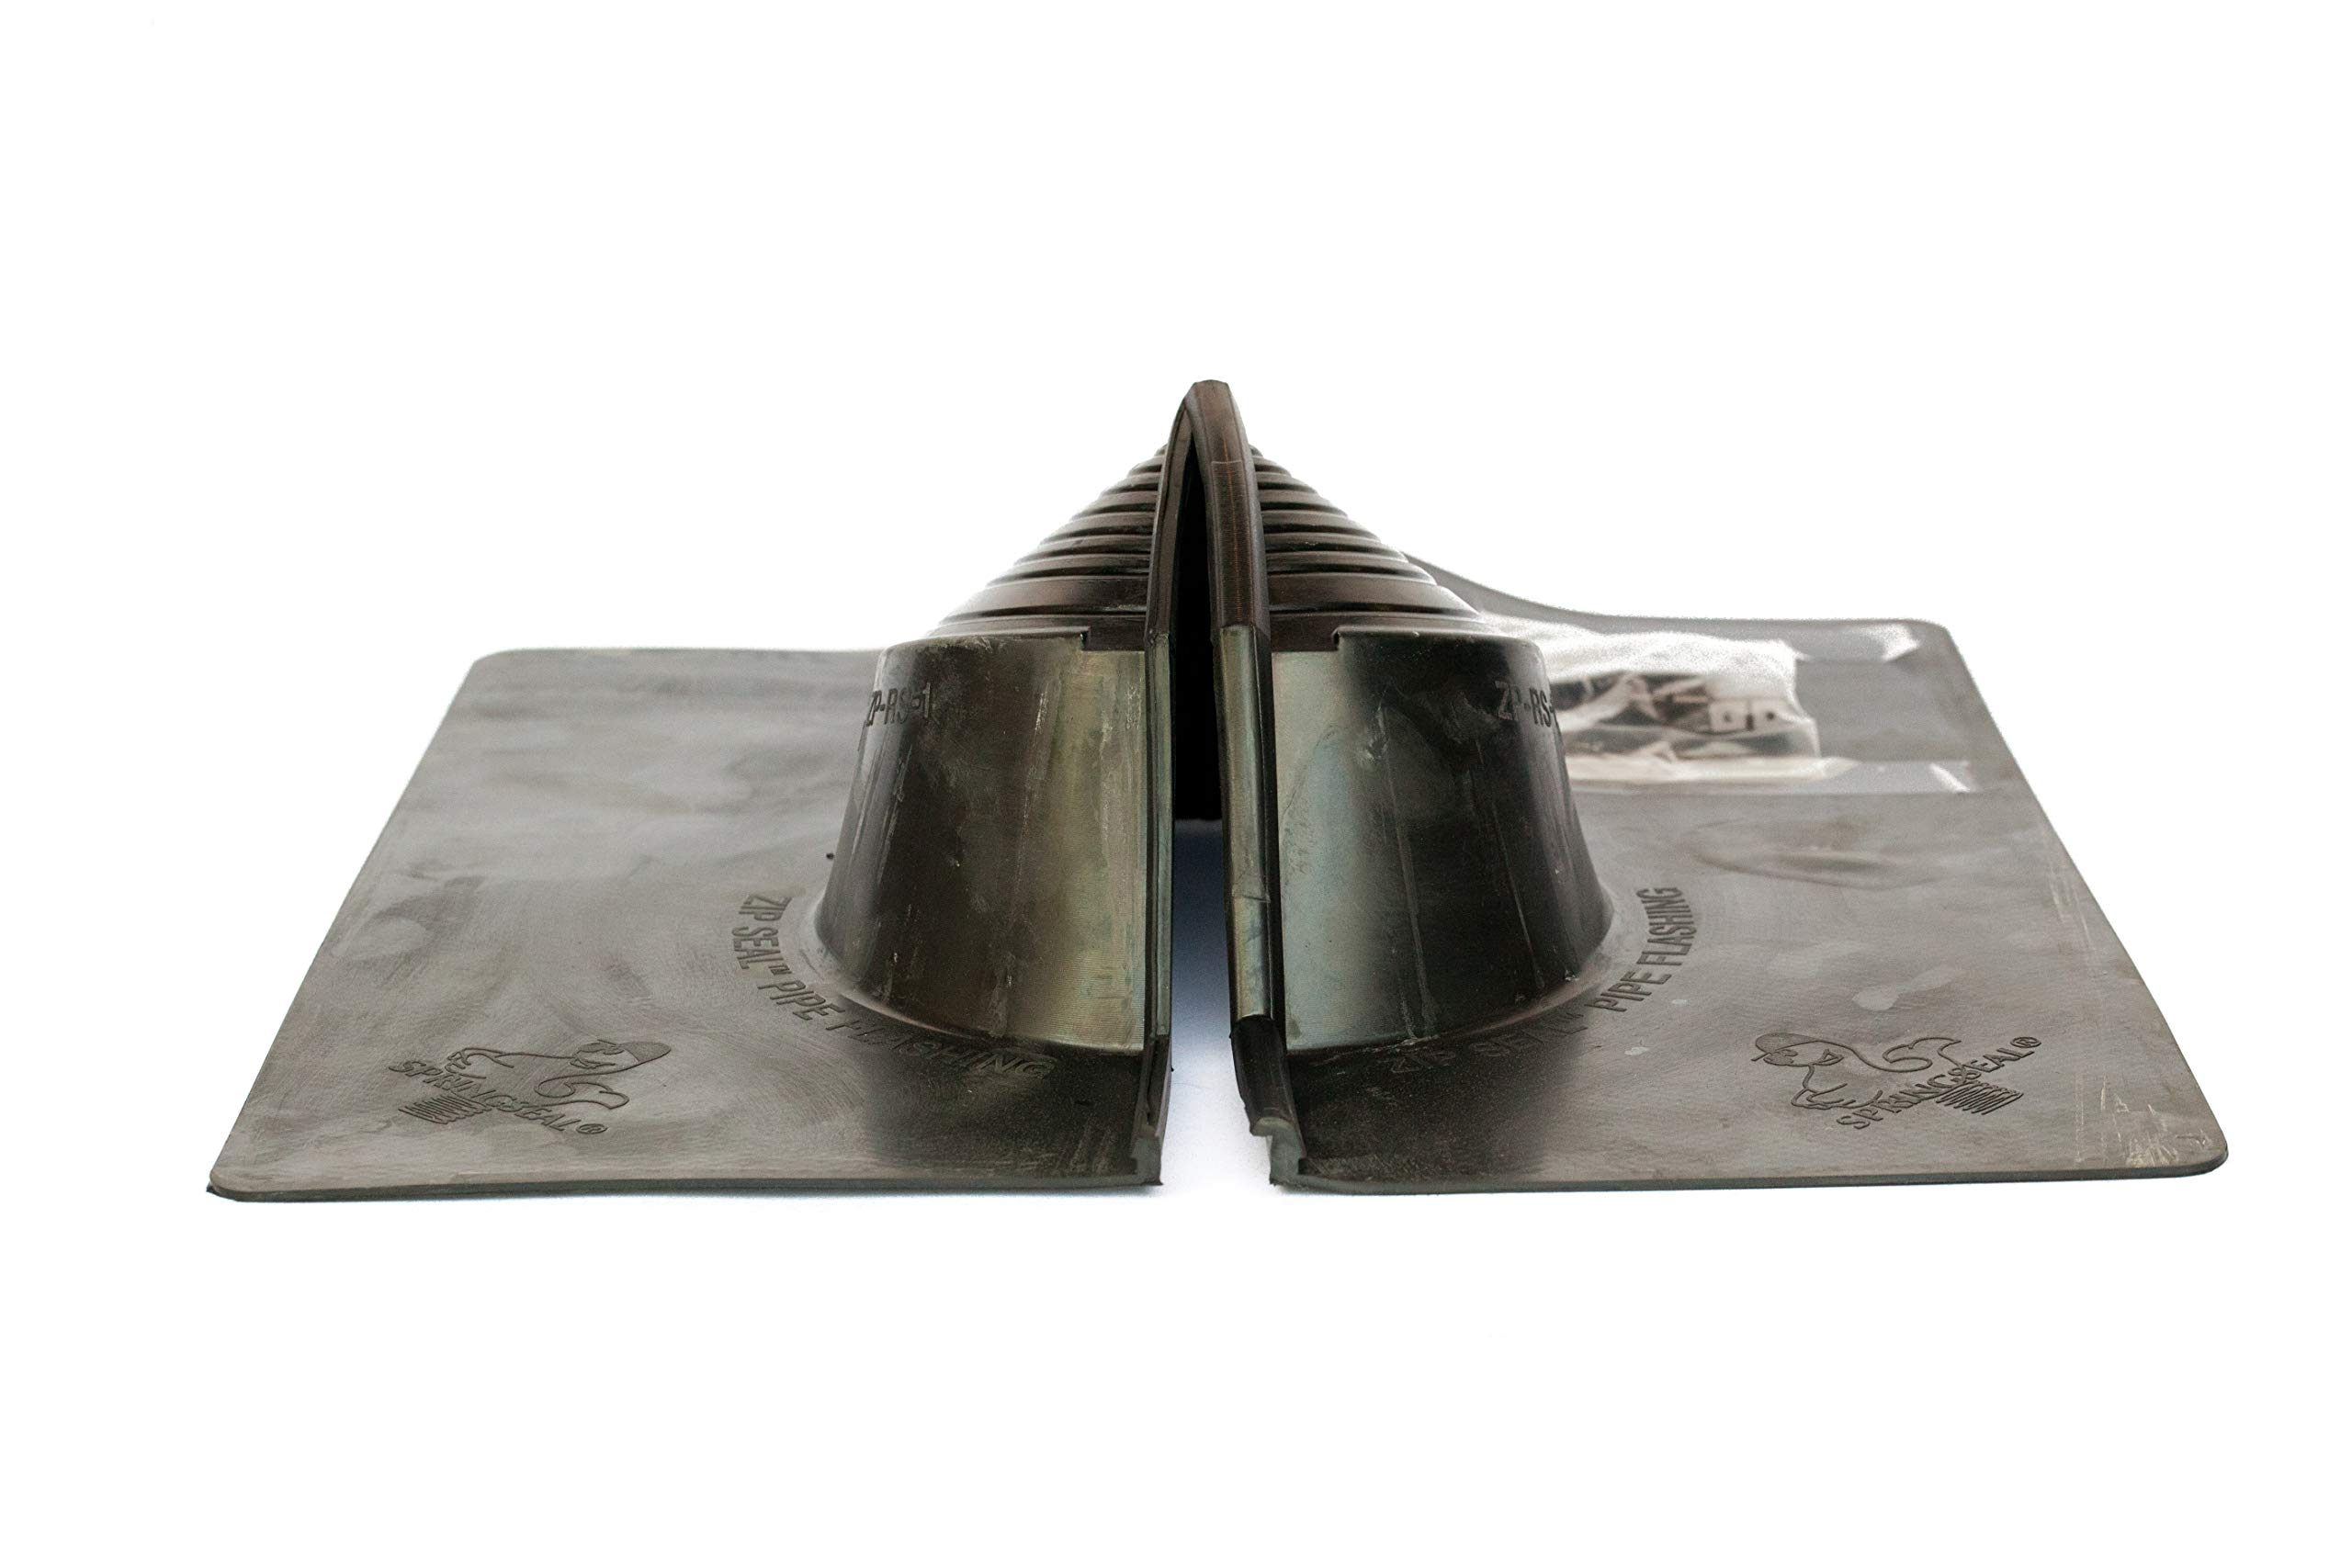 Residential Retrofit Pipe Flashing (Shingle Roof) Electrical Mast Flashing 1/4'' - 5 3/8'' by Golden Rule Fasteners